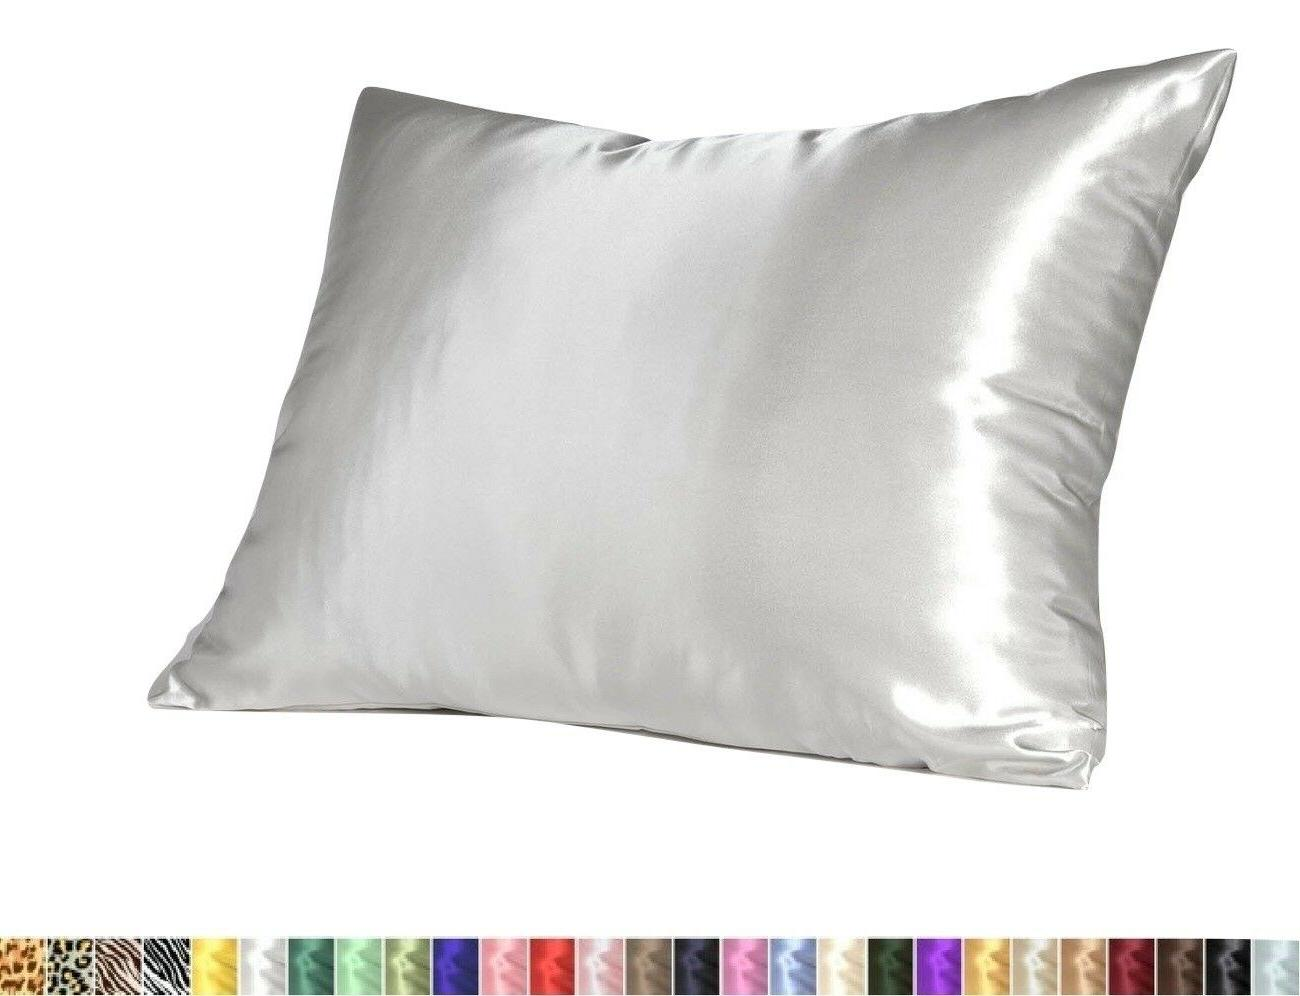 Soft Silky Satin Pillow Case Great For Hair and Skin With Zi